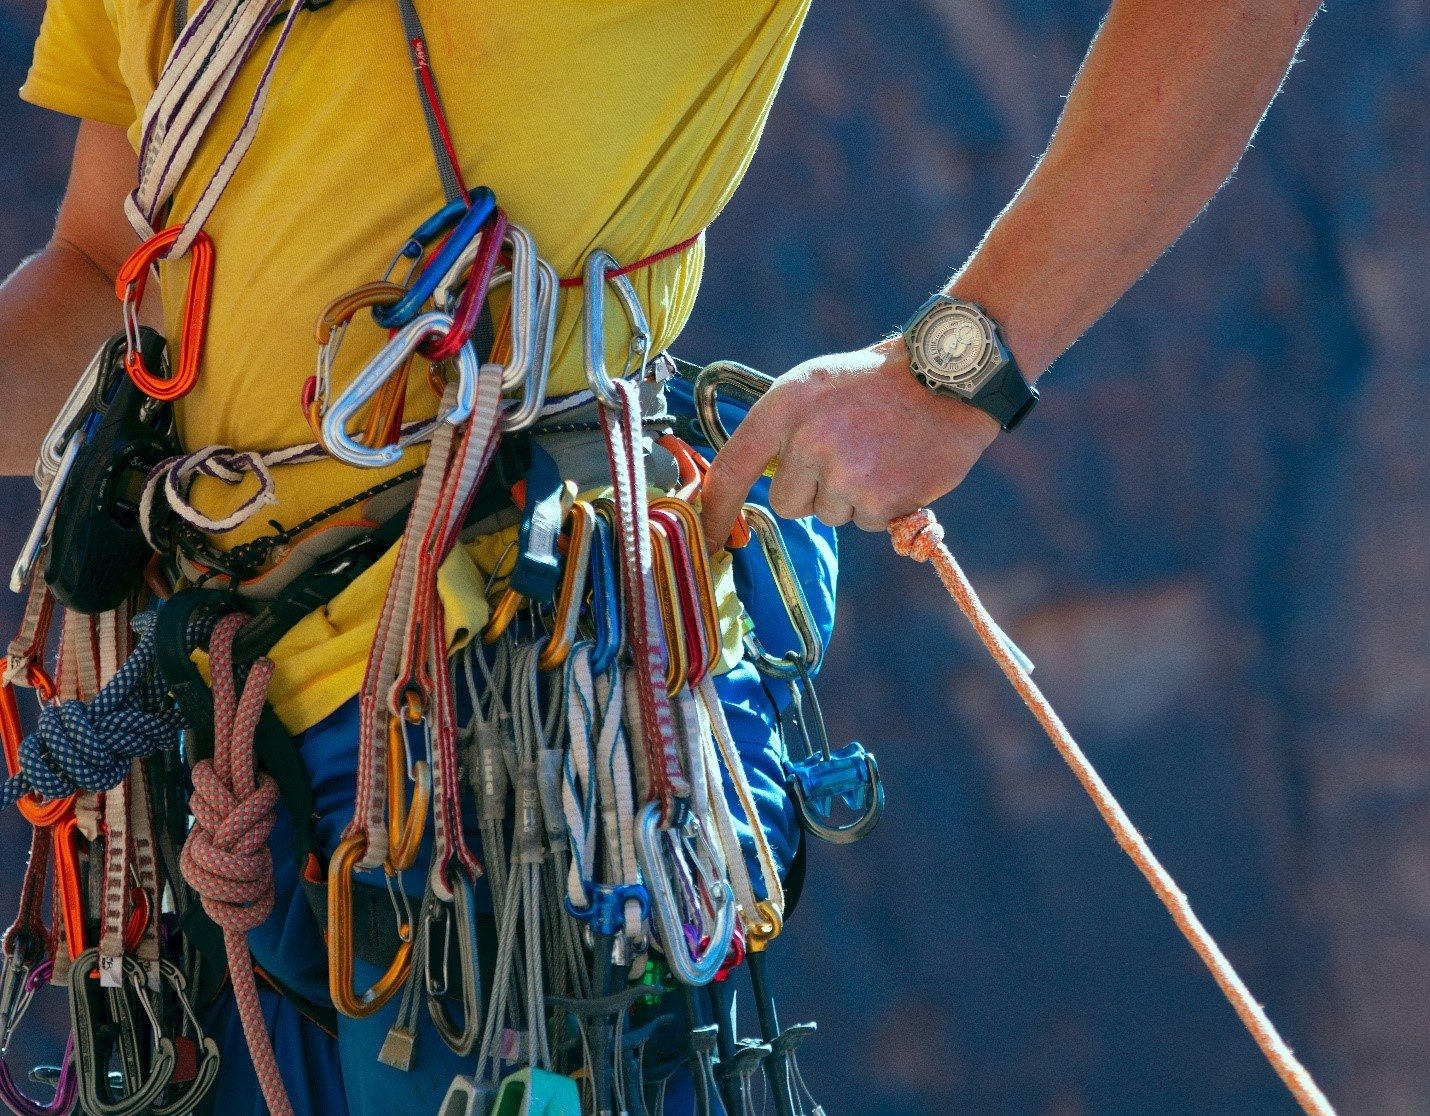 Countless ropes attached to climbers harness